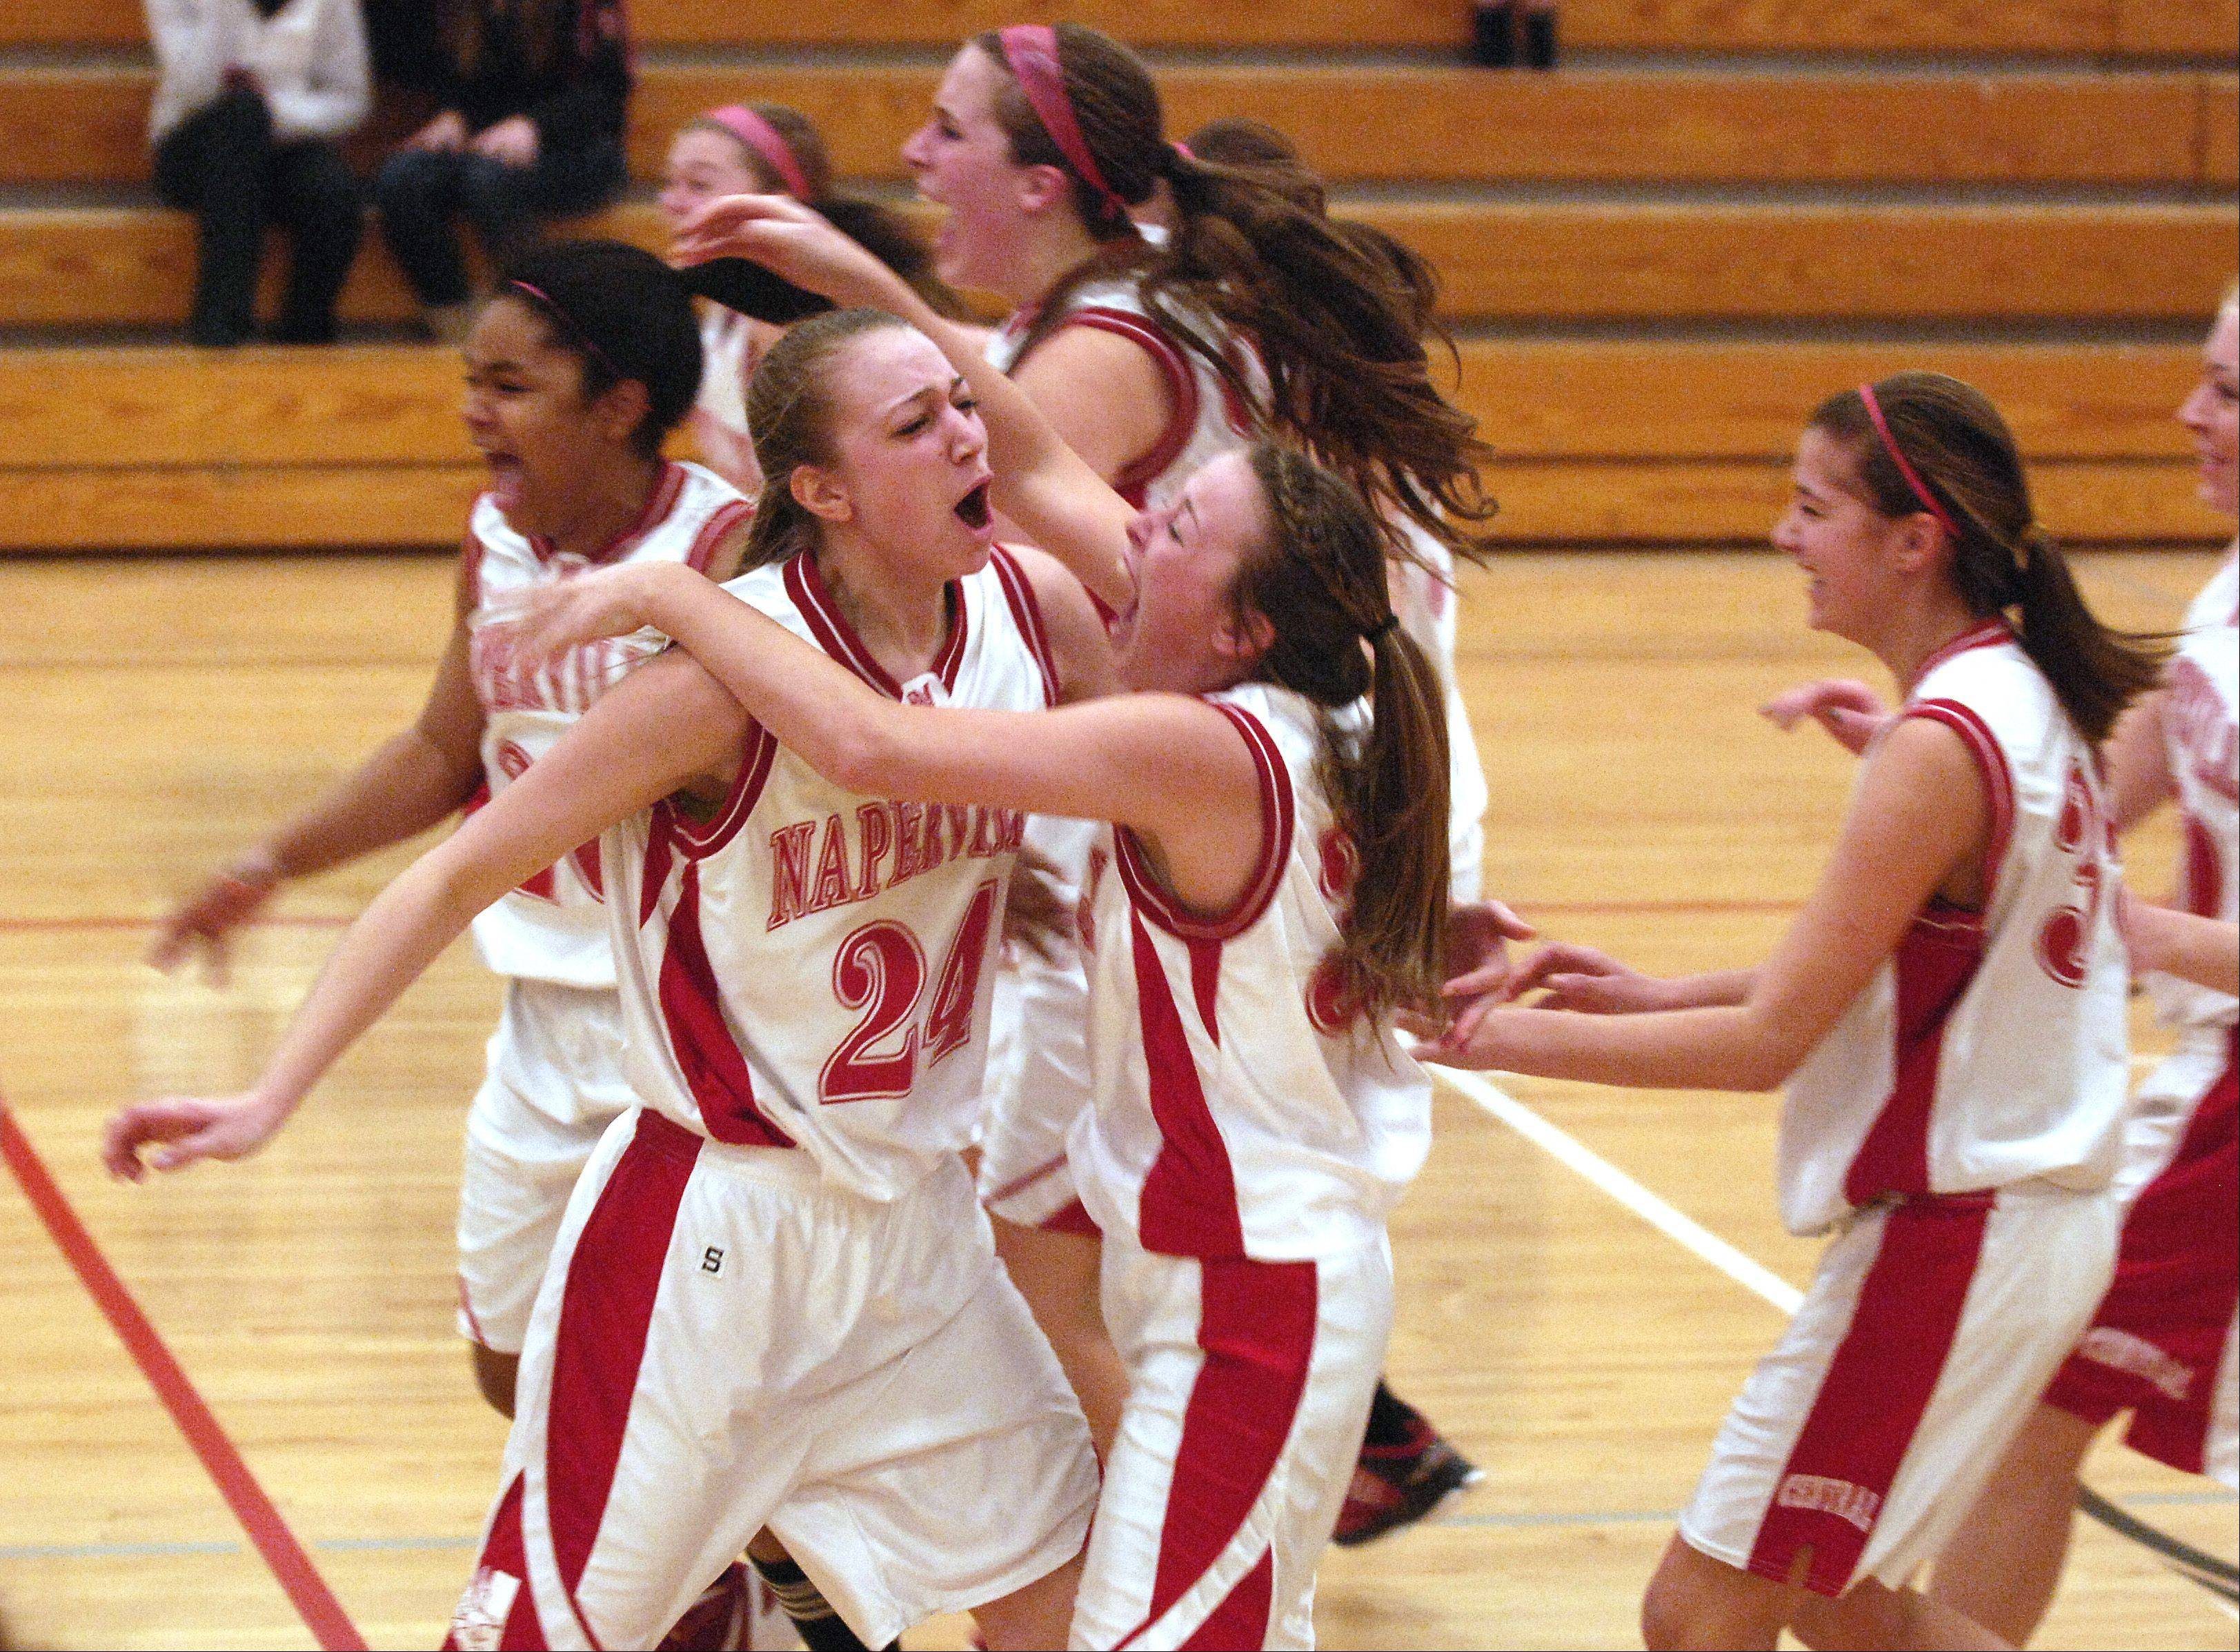 Naperville Central players celebrate their win.